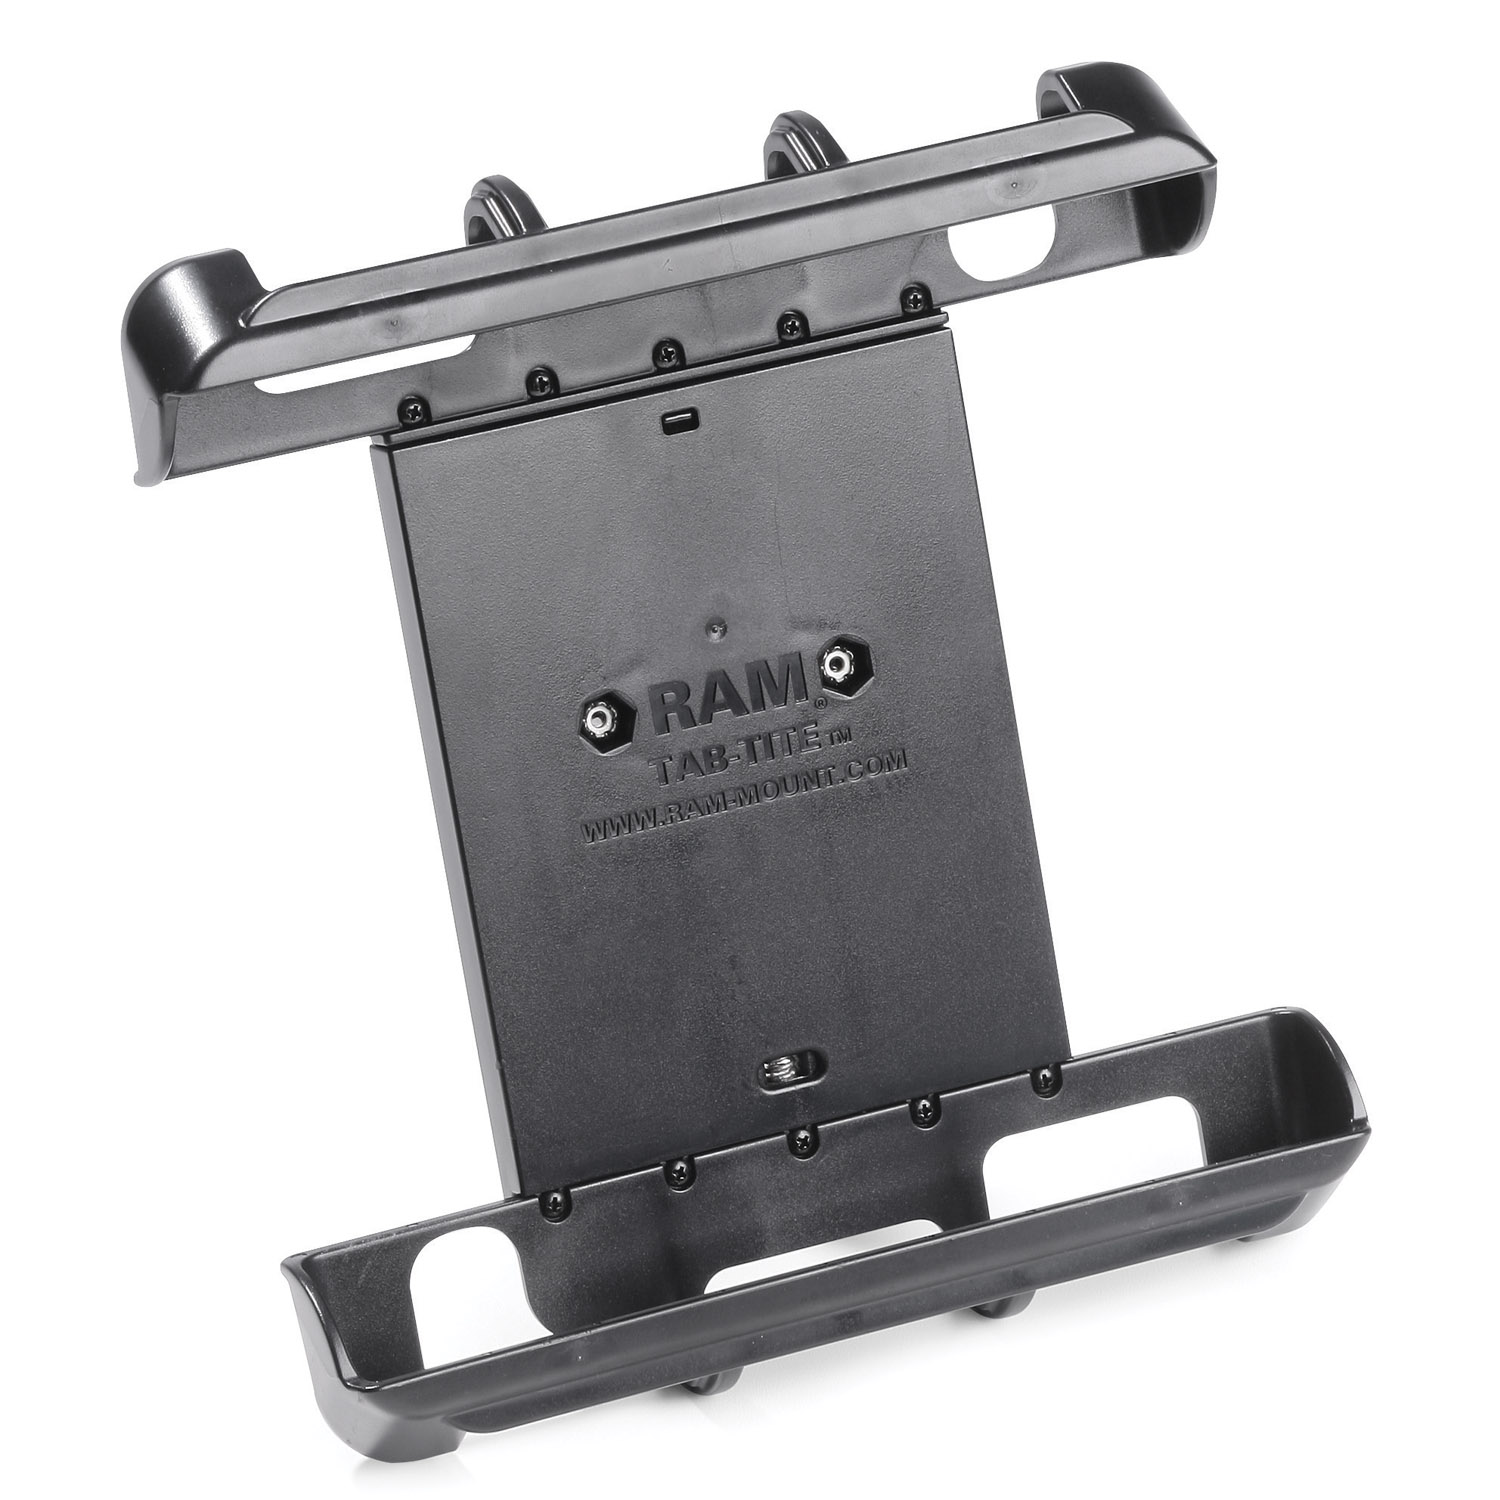 "Ram Mount Tab-Tite Universal Cradle 10"" Holder"